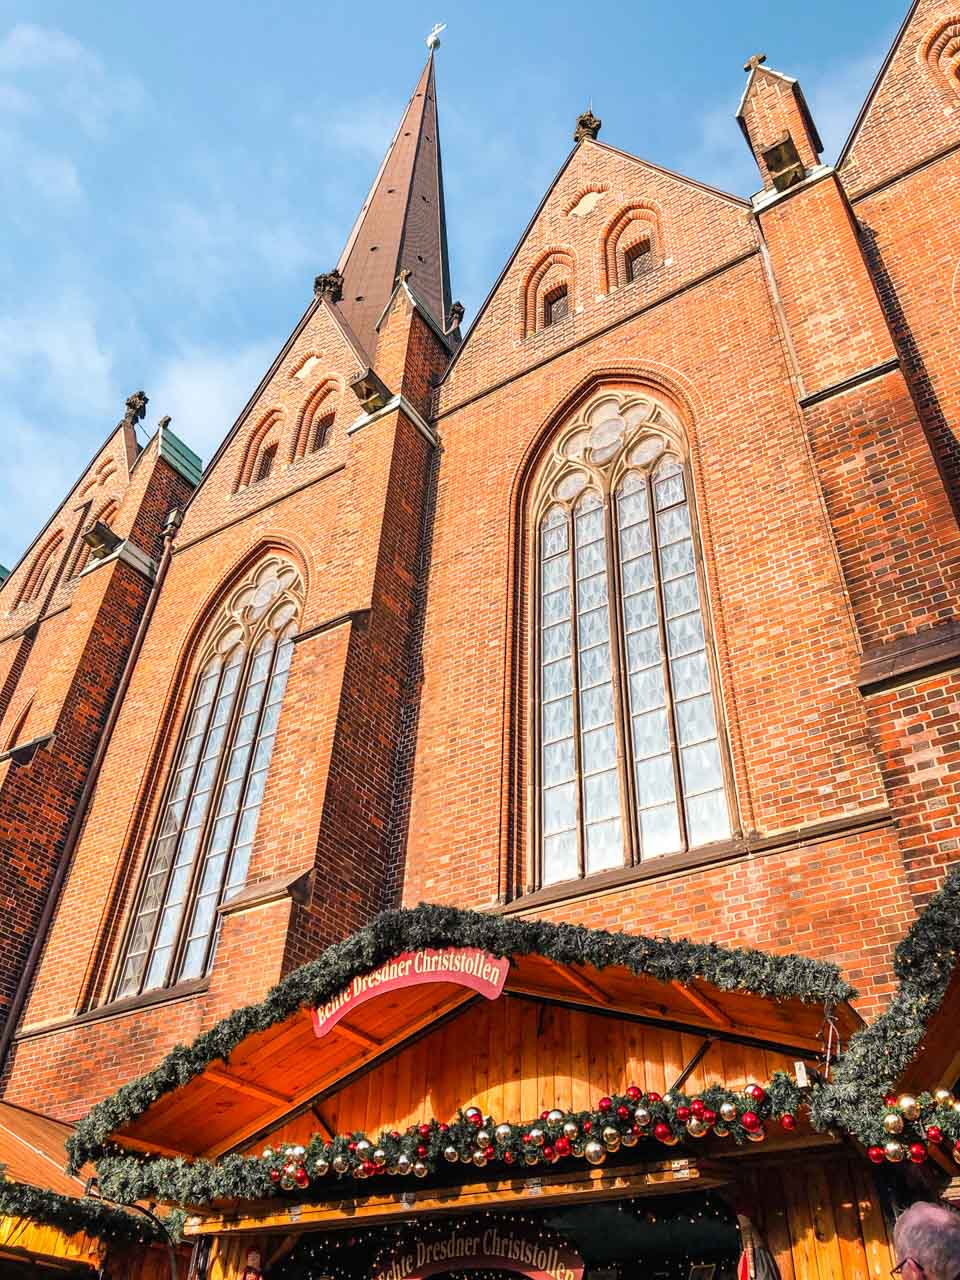 A Christmas market stall outside St. Peter's Church in Hamburg